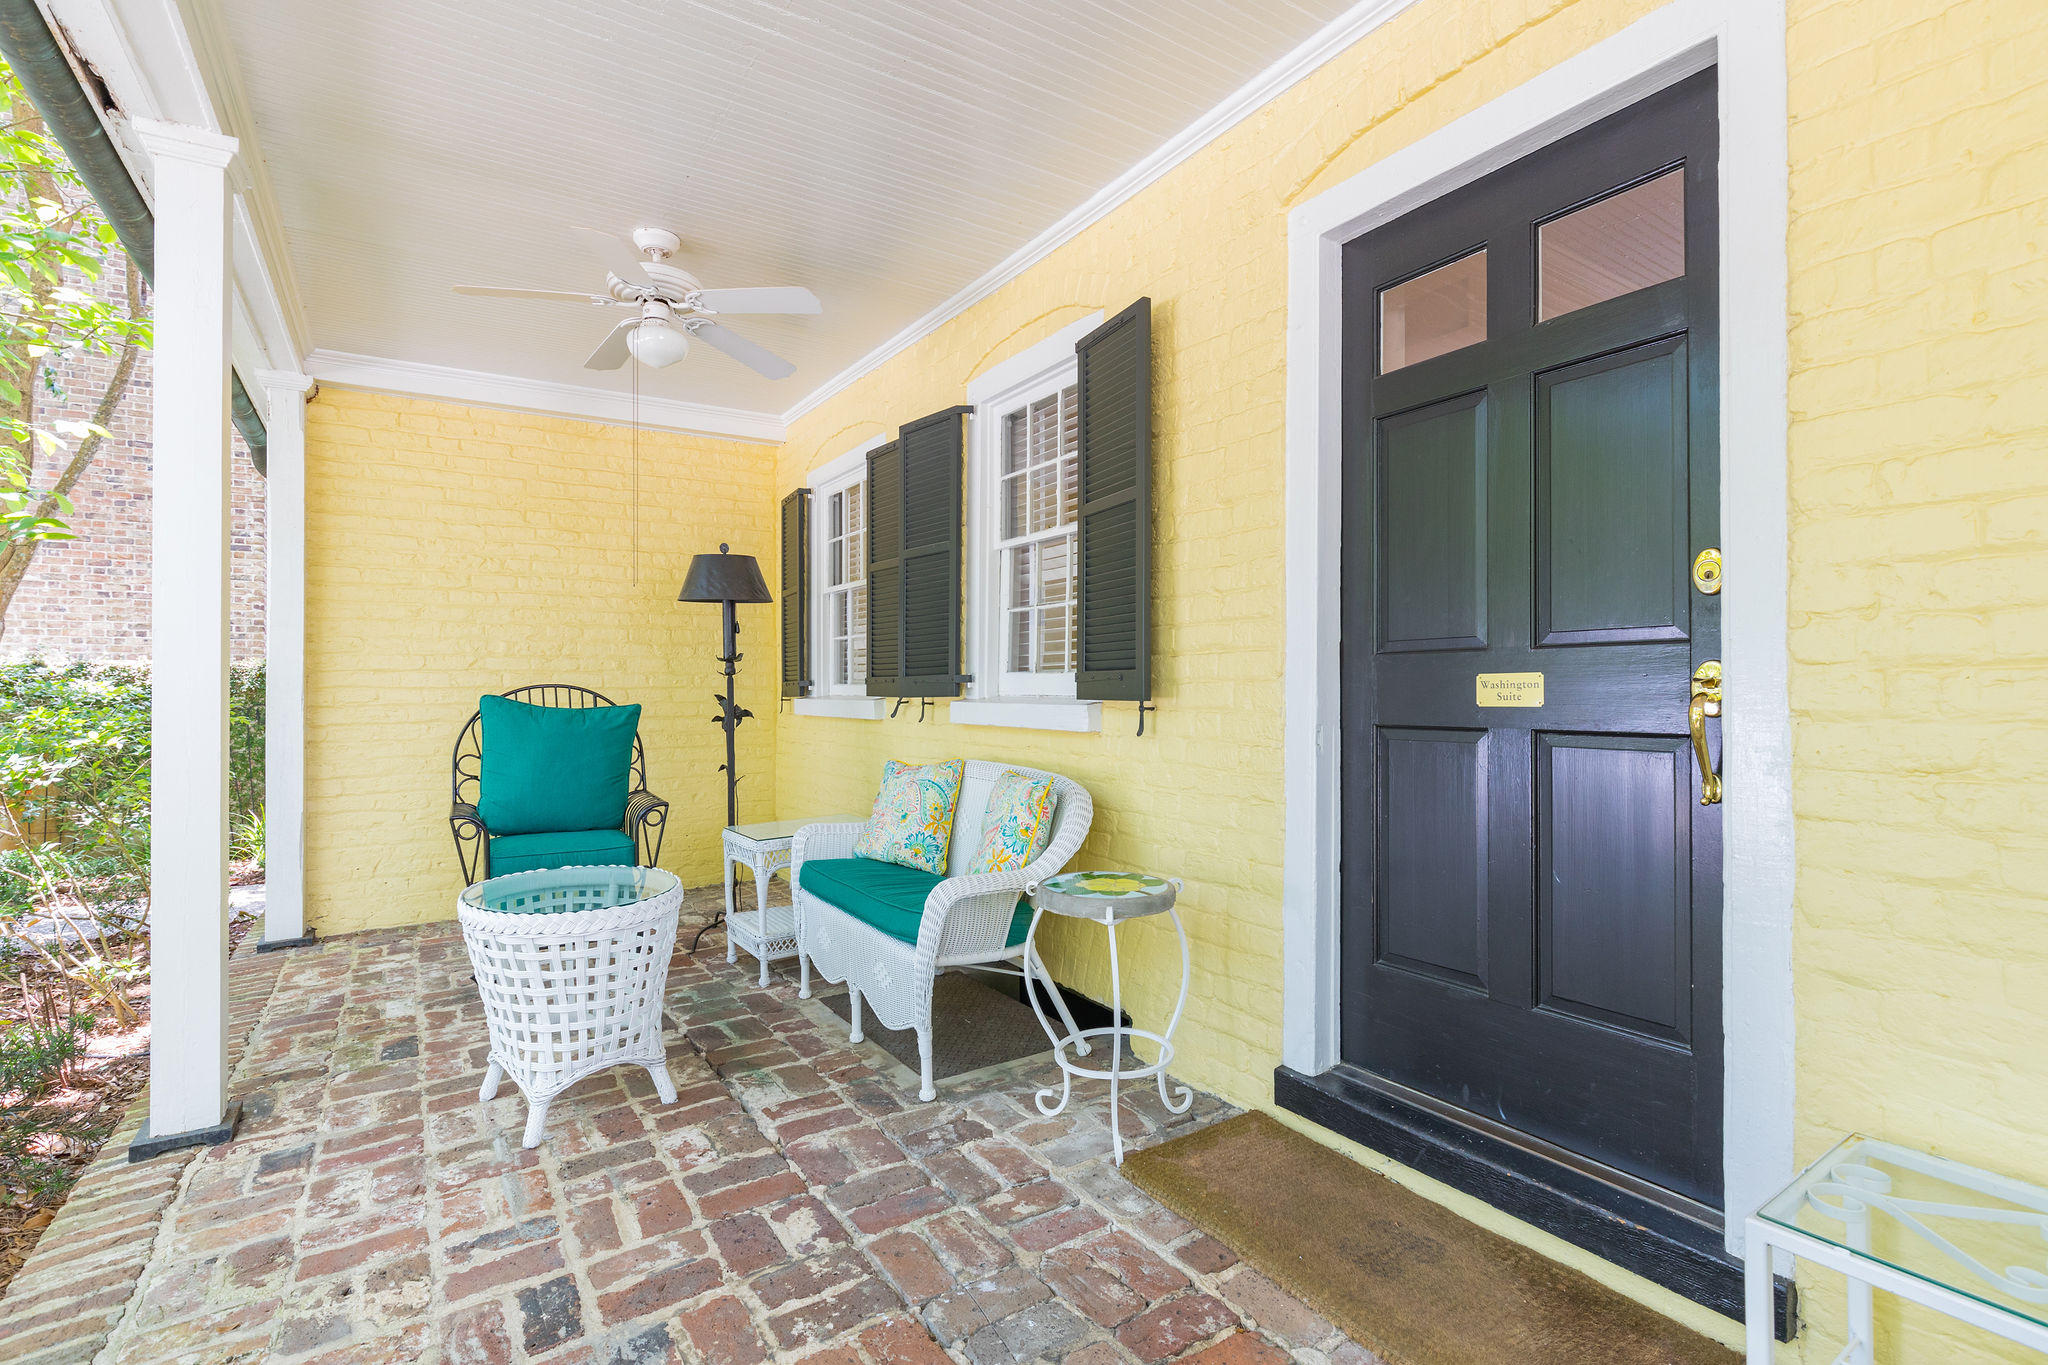 South of Broad Homes For Sale - 117 Broad, Charleston, SC - 66